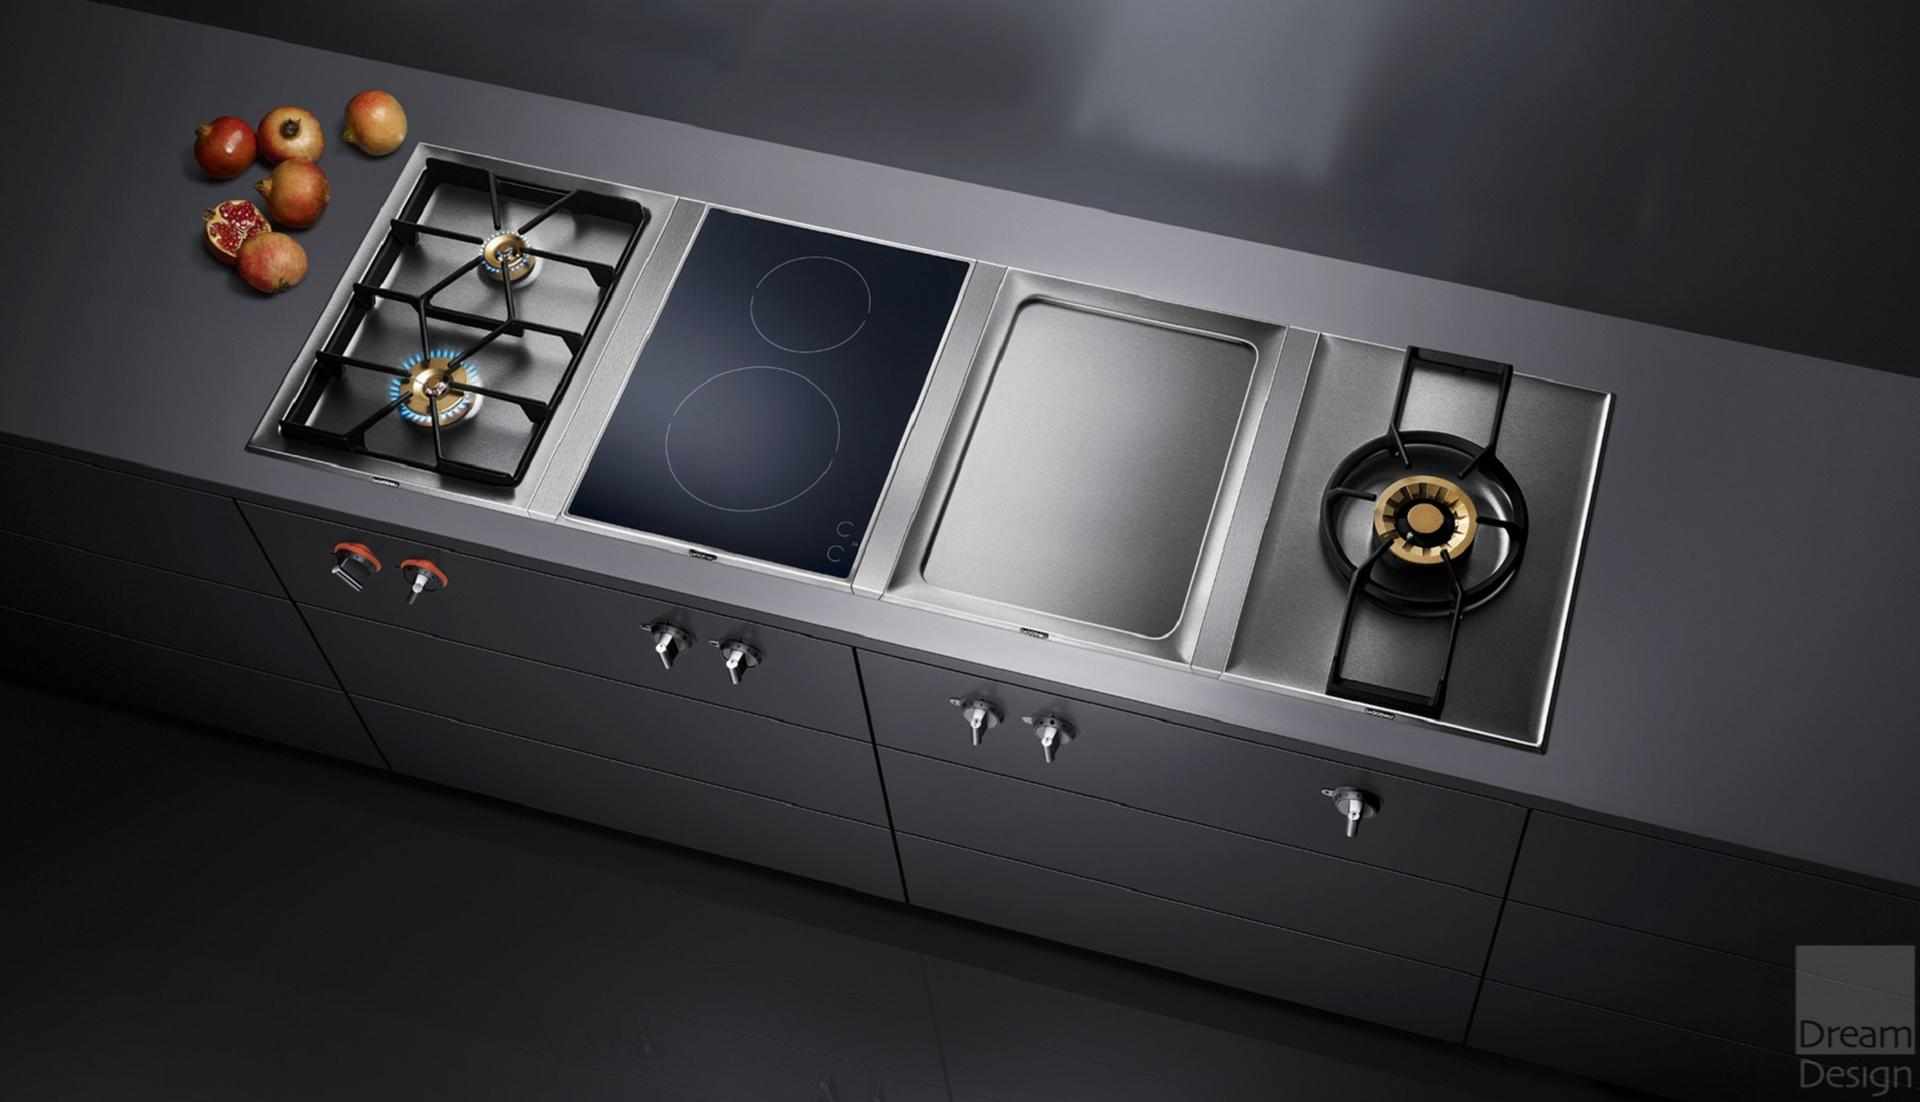 Gaggenau Appliances Dream Design Interiors Ltd - Cuisine gaggenau